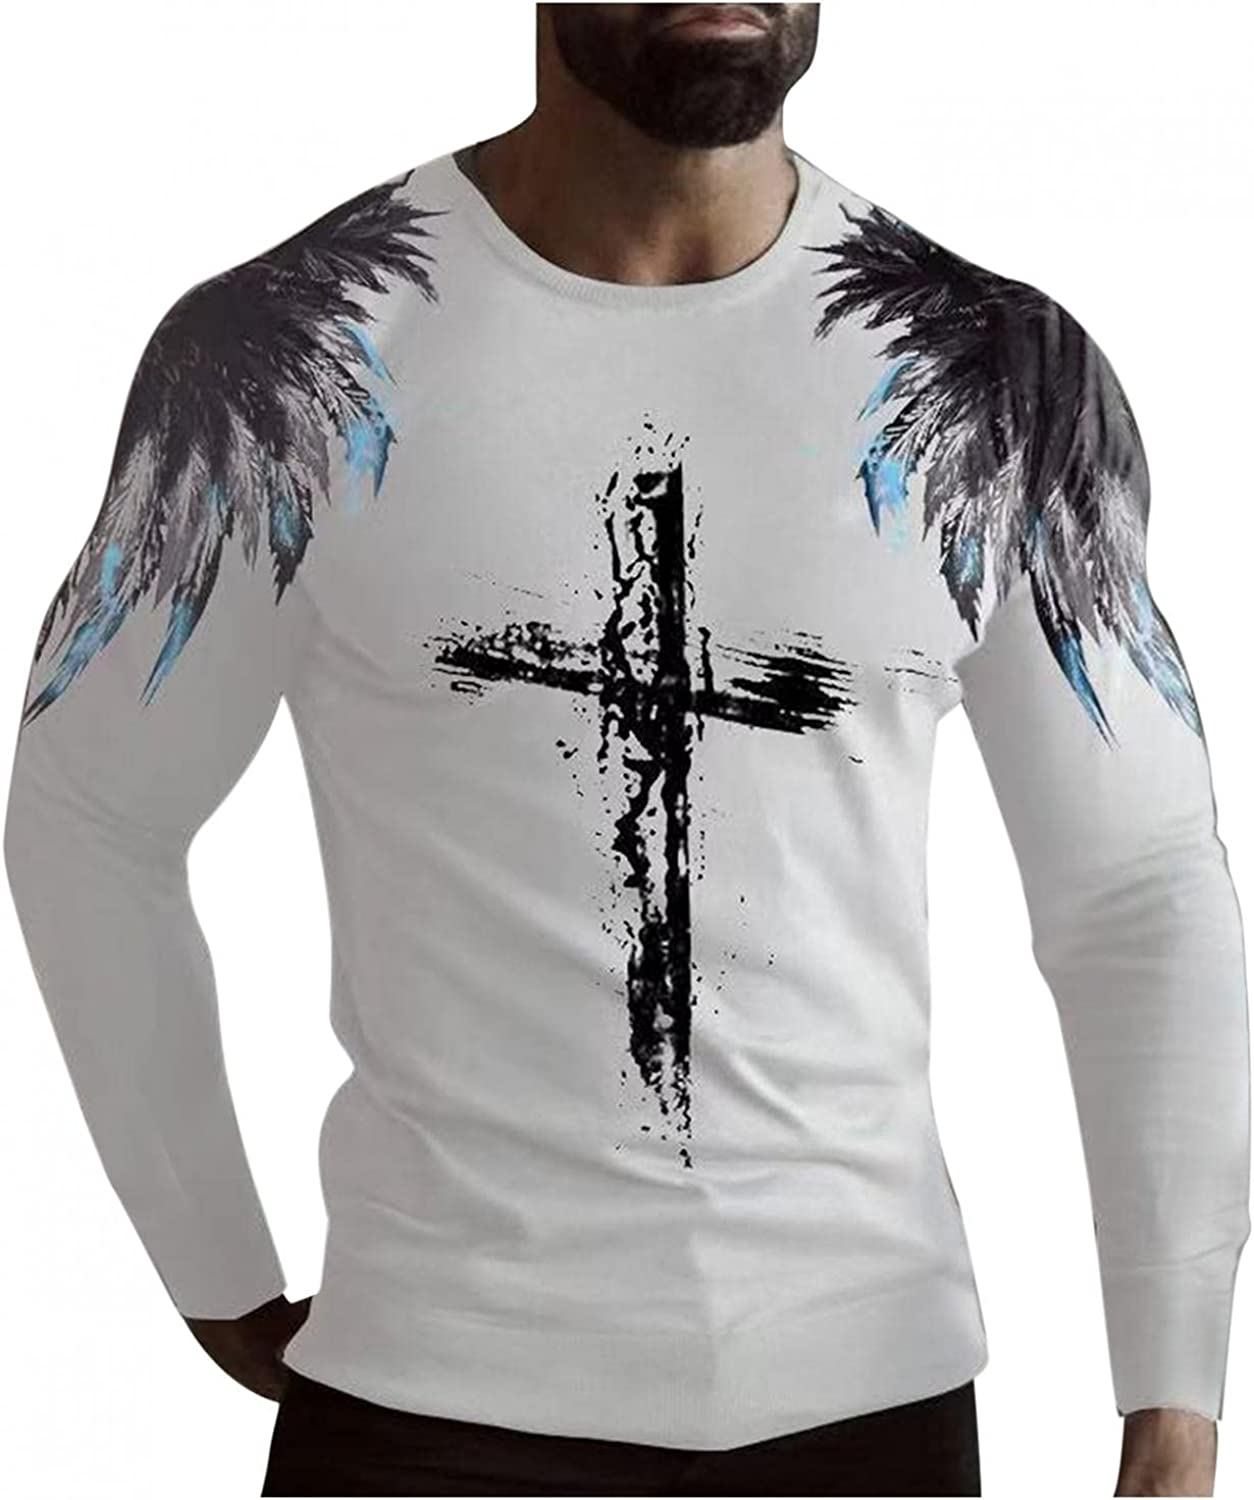 Mens Shirts Men's Casual Cross Feather Print Long Sleeve Tee Shirt for Men Top Round Neck T-Shirt Blouse Polo Shirts for Men